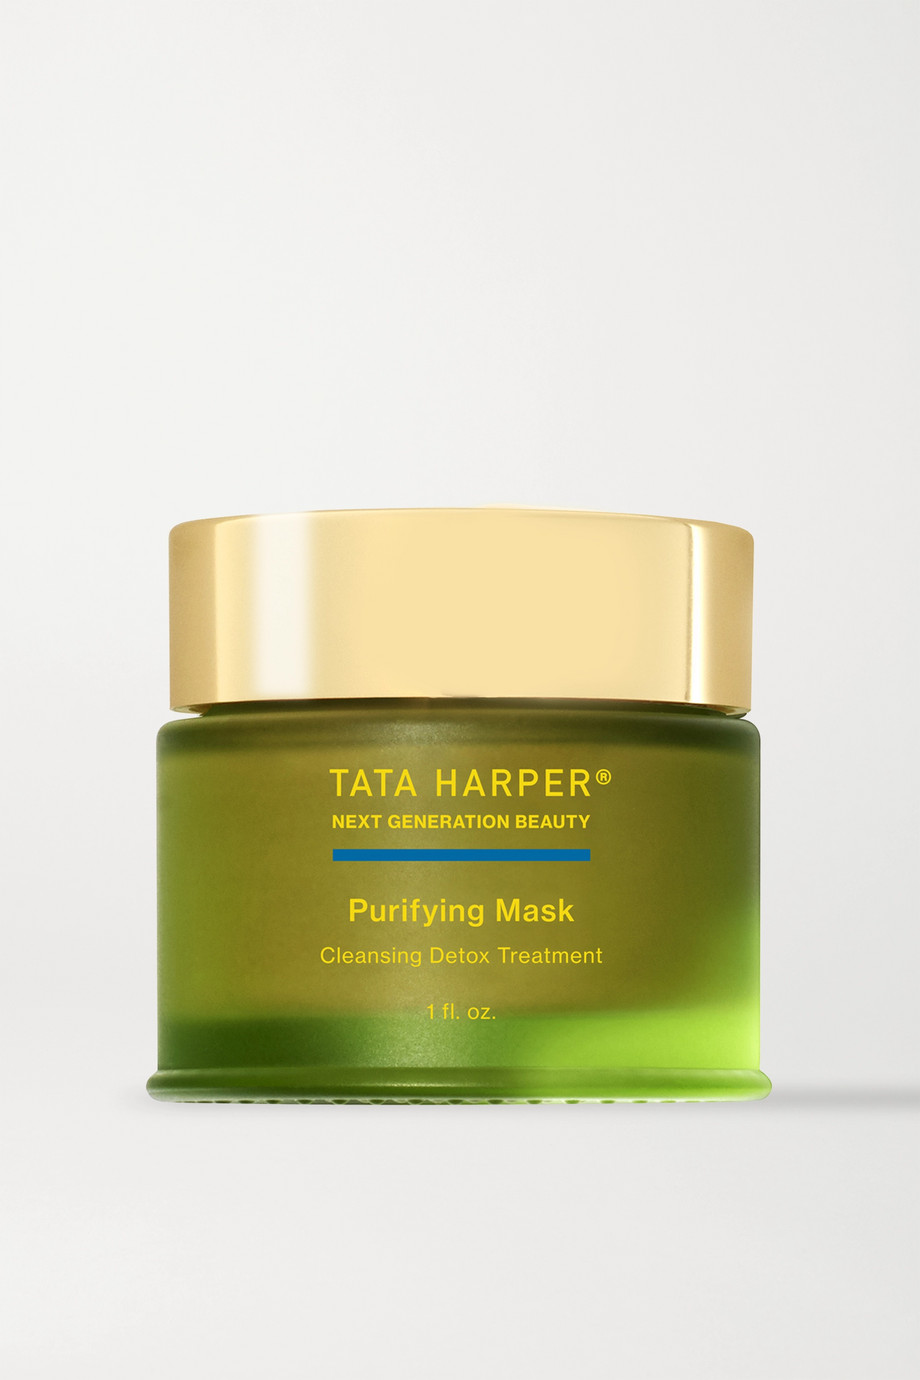 Purfiying Mask, 30ml, by Tata Harper